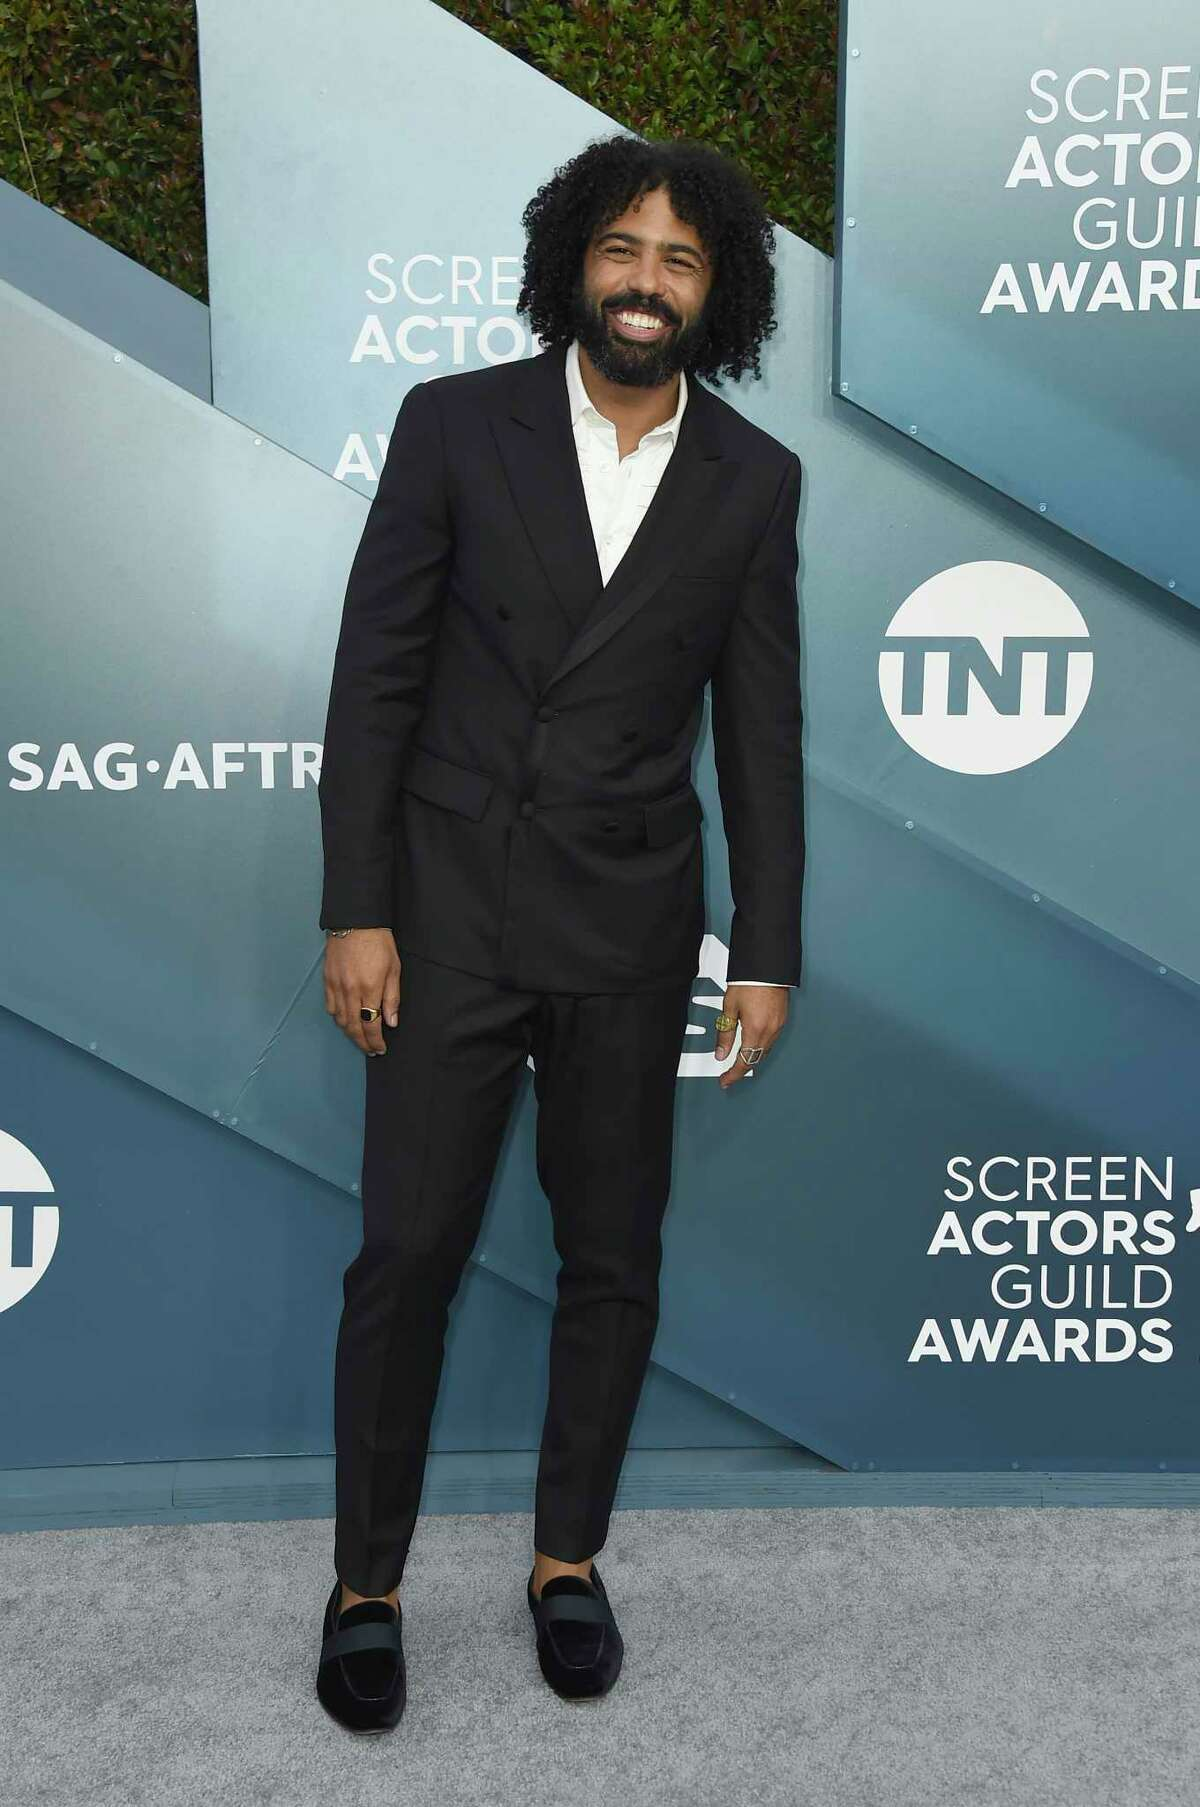 Daveed Diggs arrives at the 26th annual Screen Actors Guild Awards at the Shrine Auditorium & Expo Hall on Sunday, Jan. 19, 2020, in Los Angeles. (Photo by Jordan Strauss/Invision/AP)